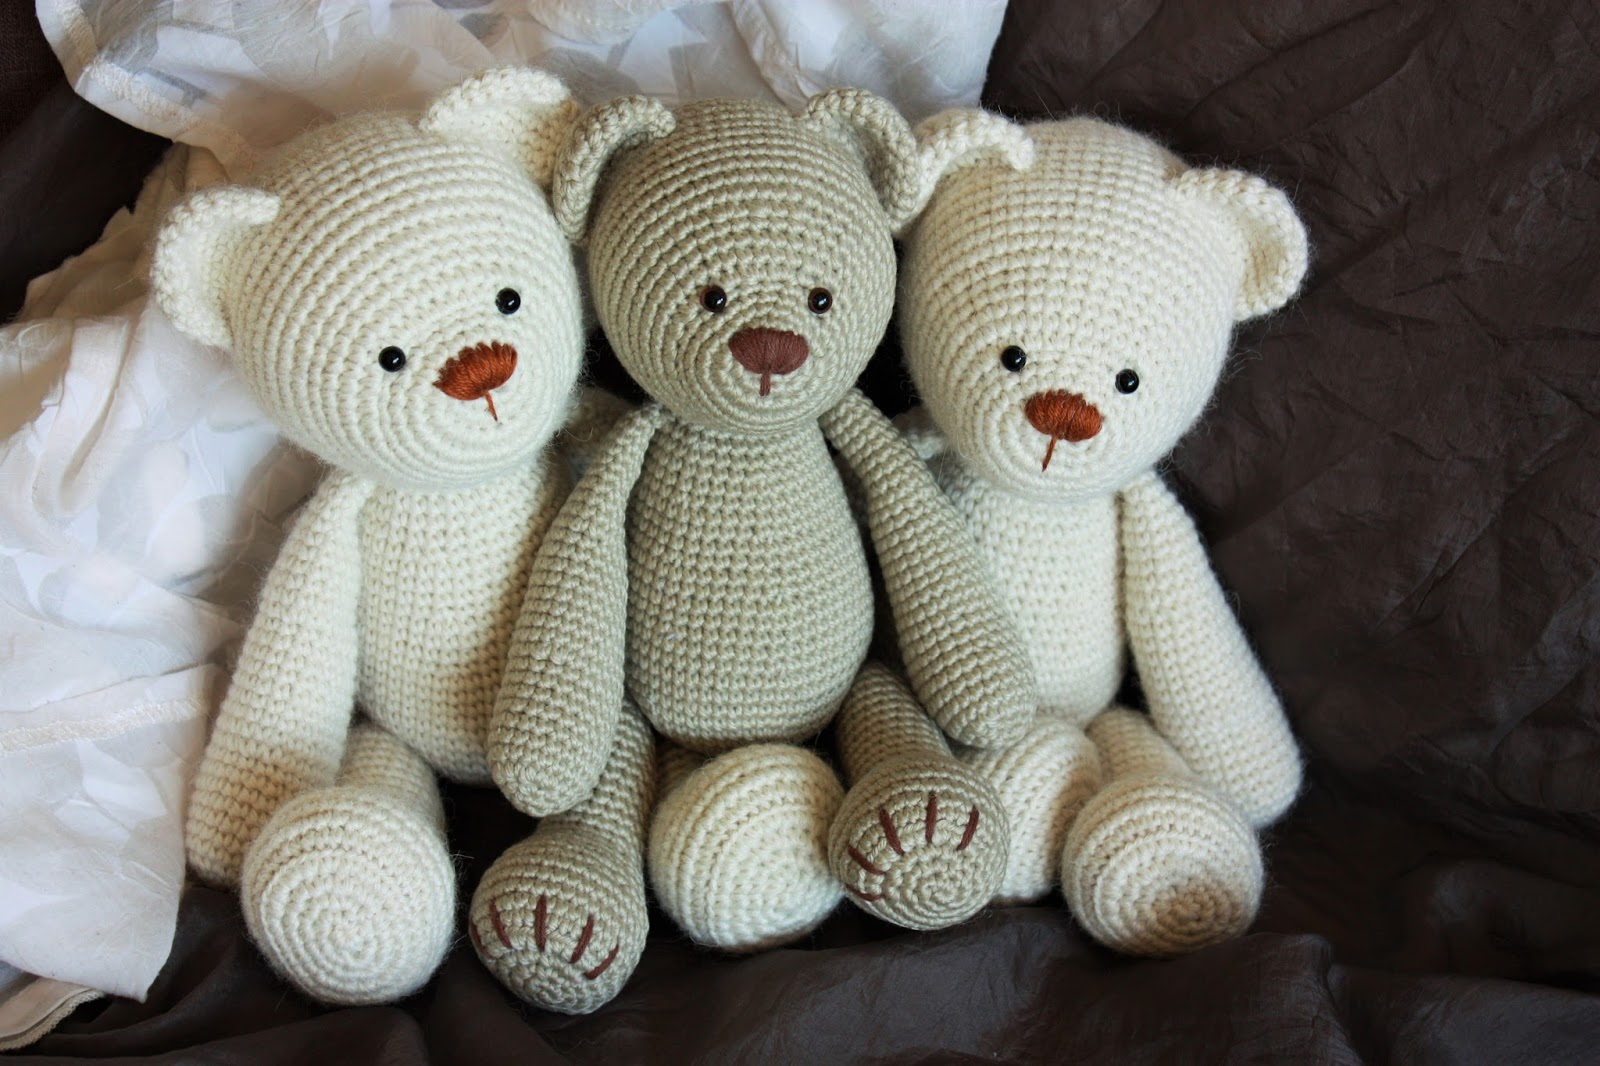 ... Happyamigurumi: Lucas the Teddy Bear Pattern: New Teddy Bear Friends